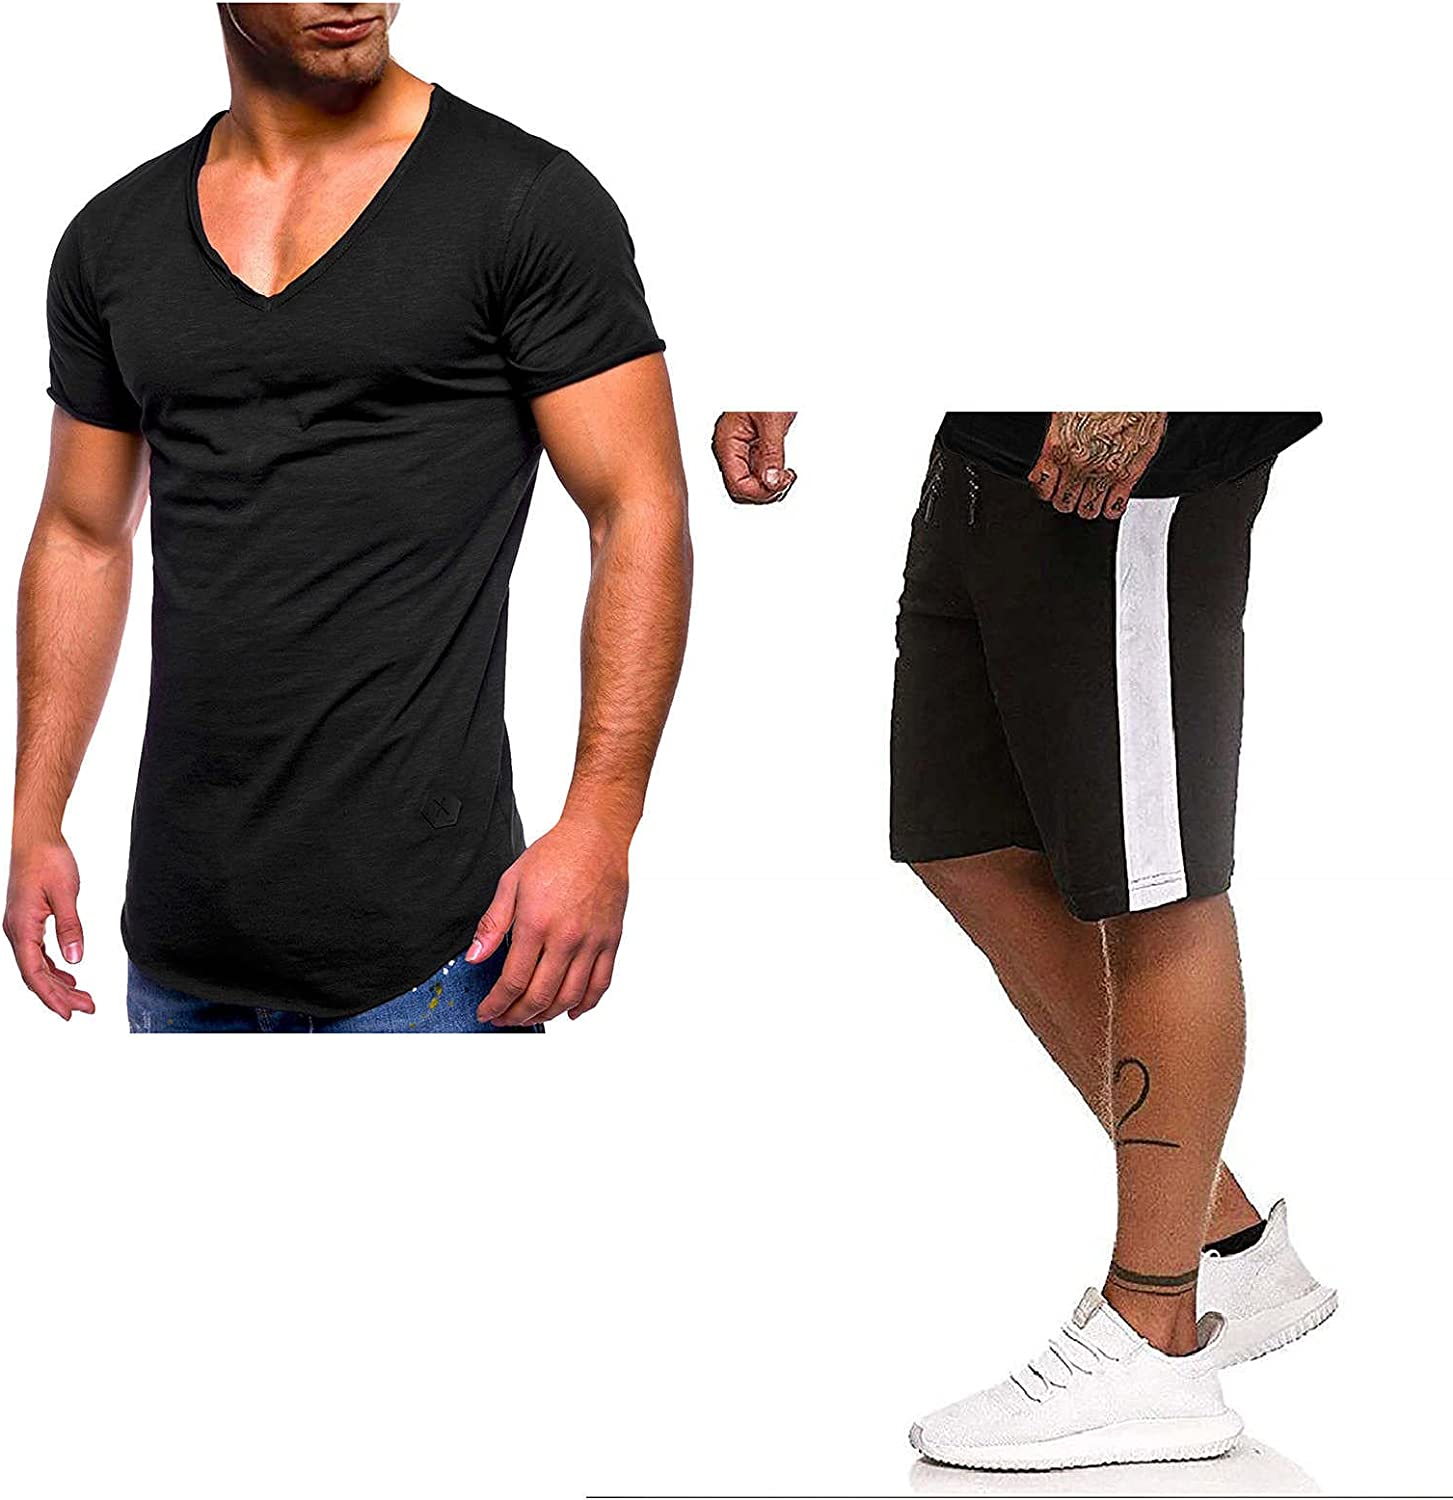 DZQUY Men's Summer 2 Piece Short Outfits Short Sleeve V Neck Workout T-Shirts and Sports Shorts Set Casual Muscle Tracksuit